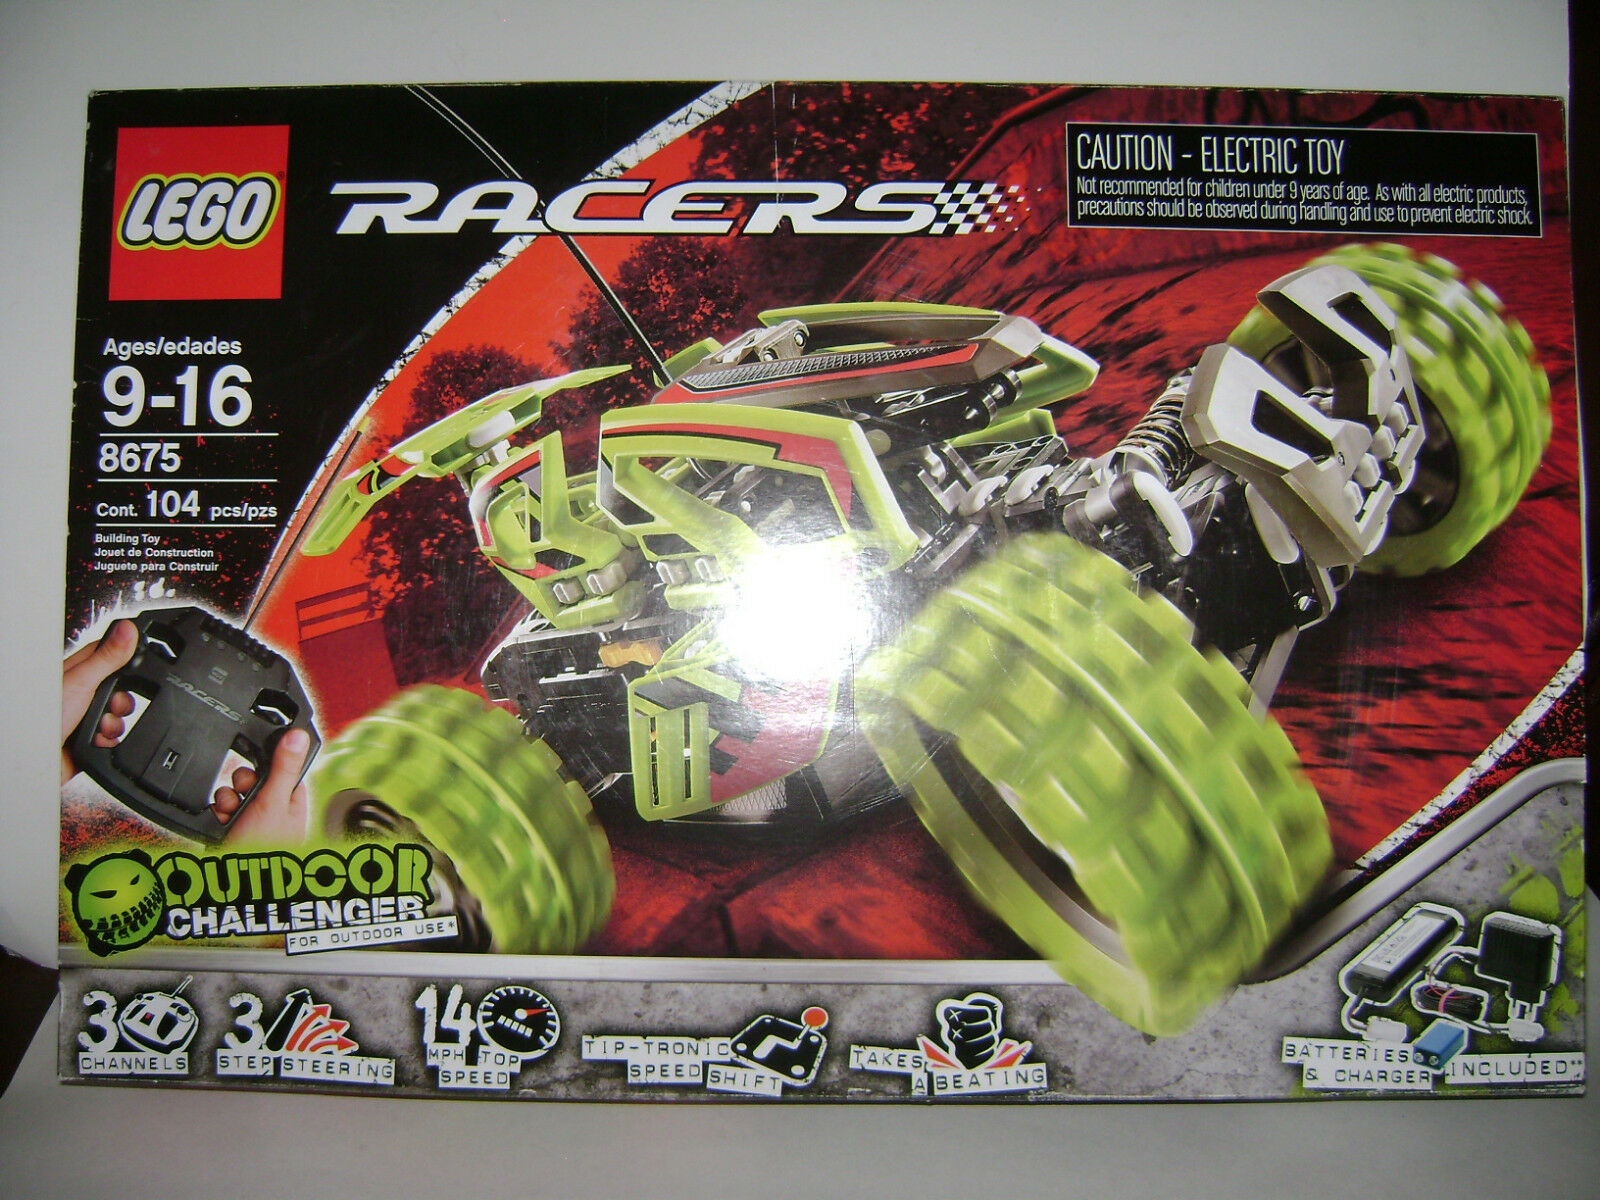 NEW 8675 RACERS OUTDOOR LEGO RC CHALLENGER Building Toy SEALED BOX RETIrosso A